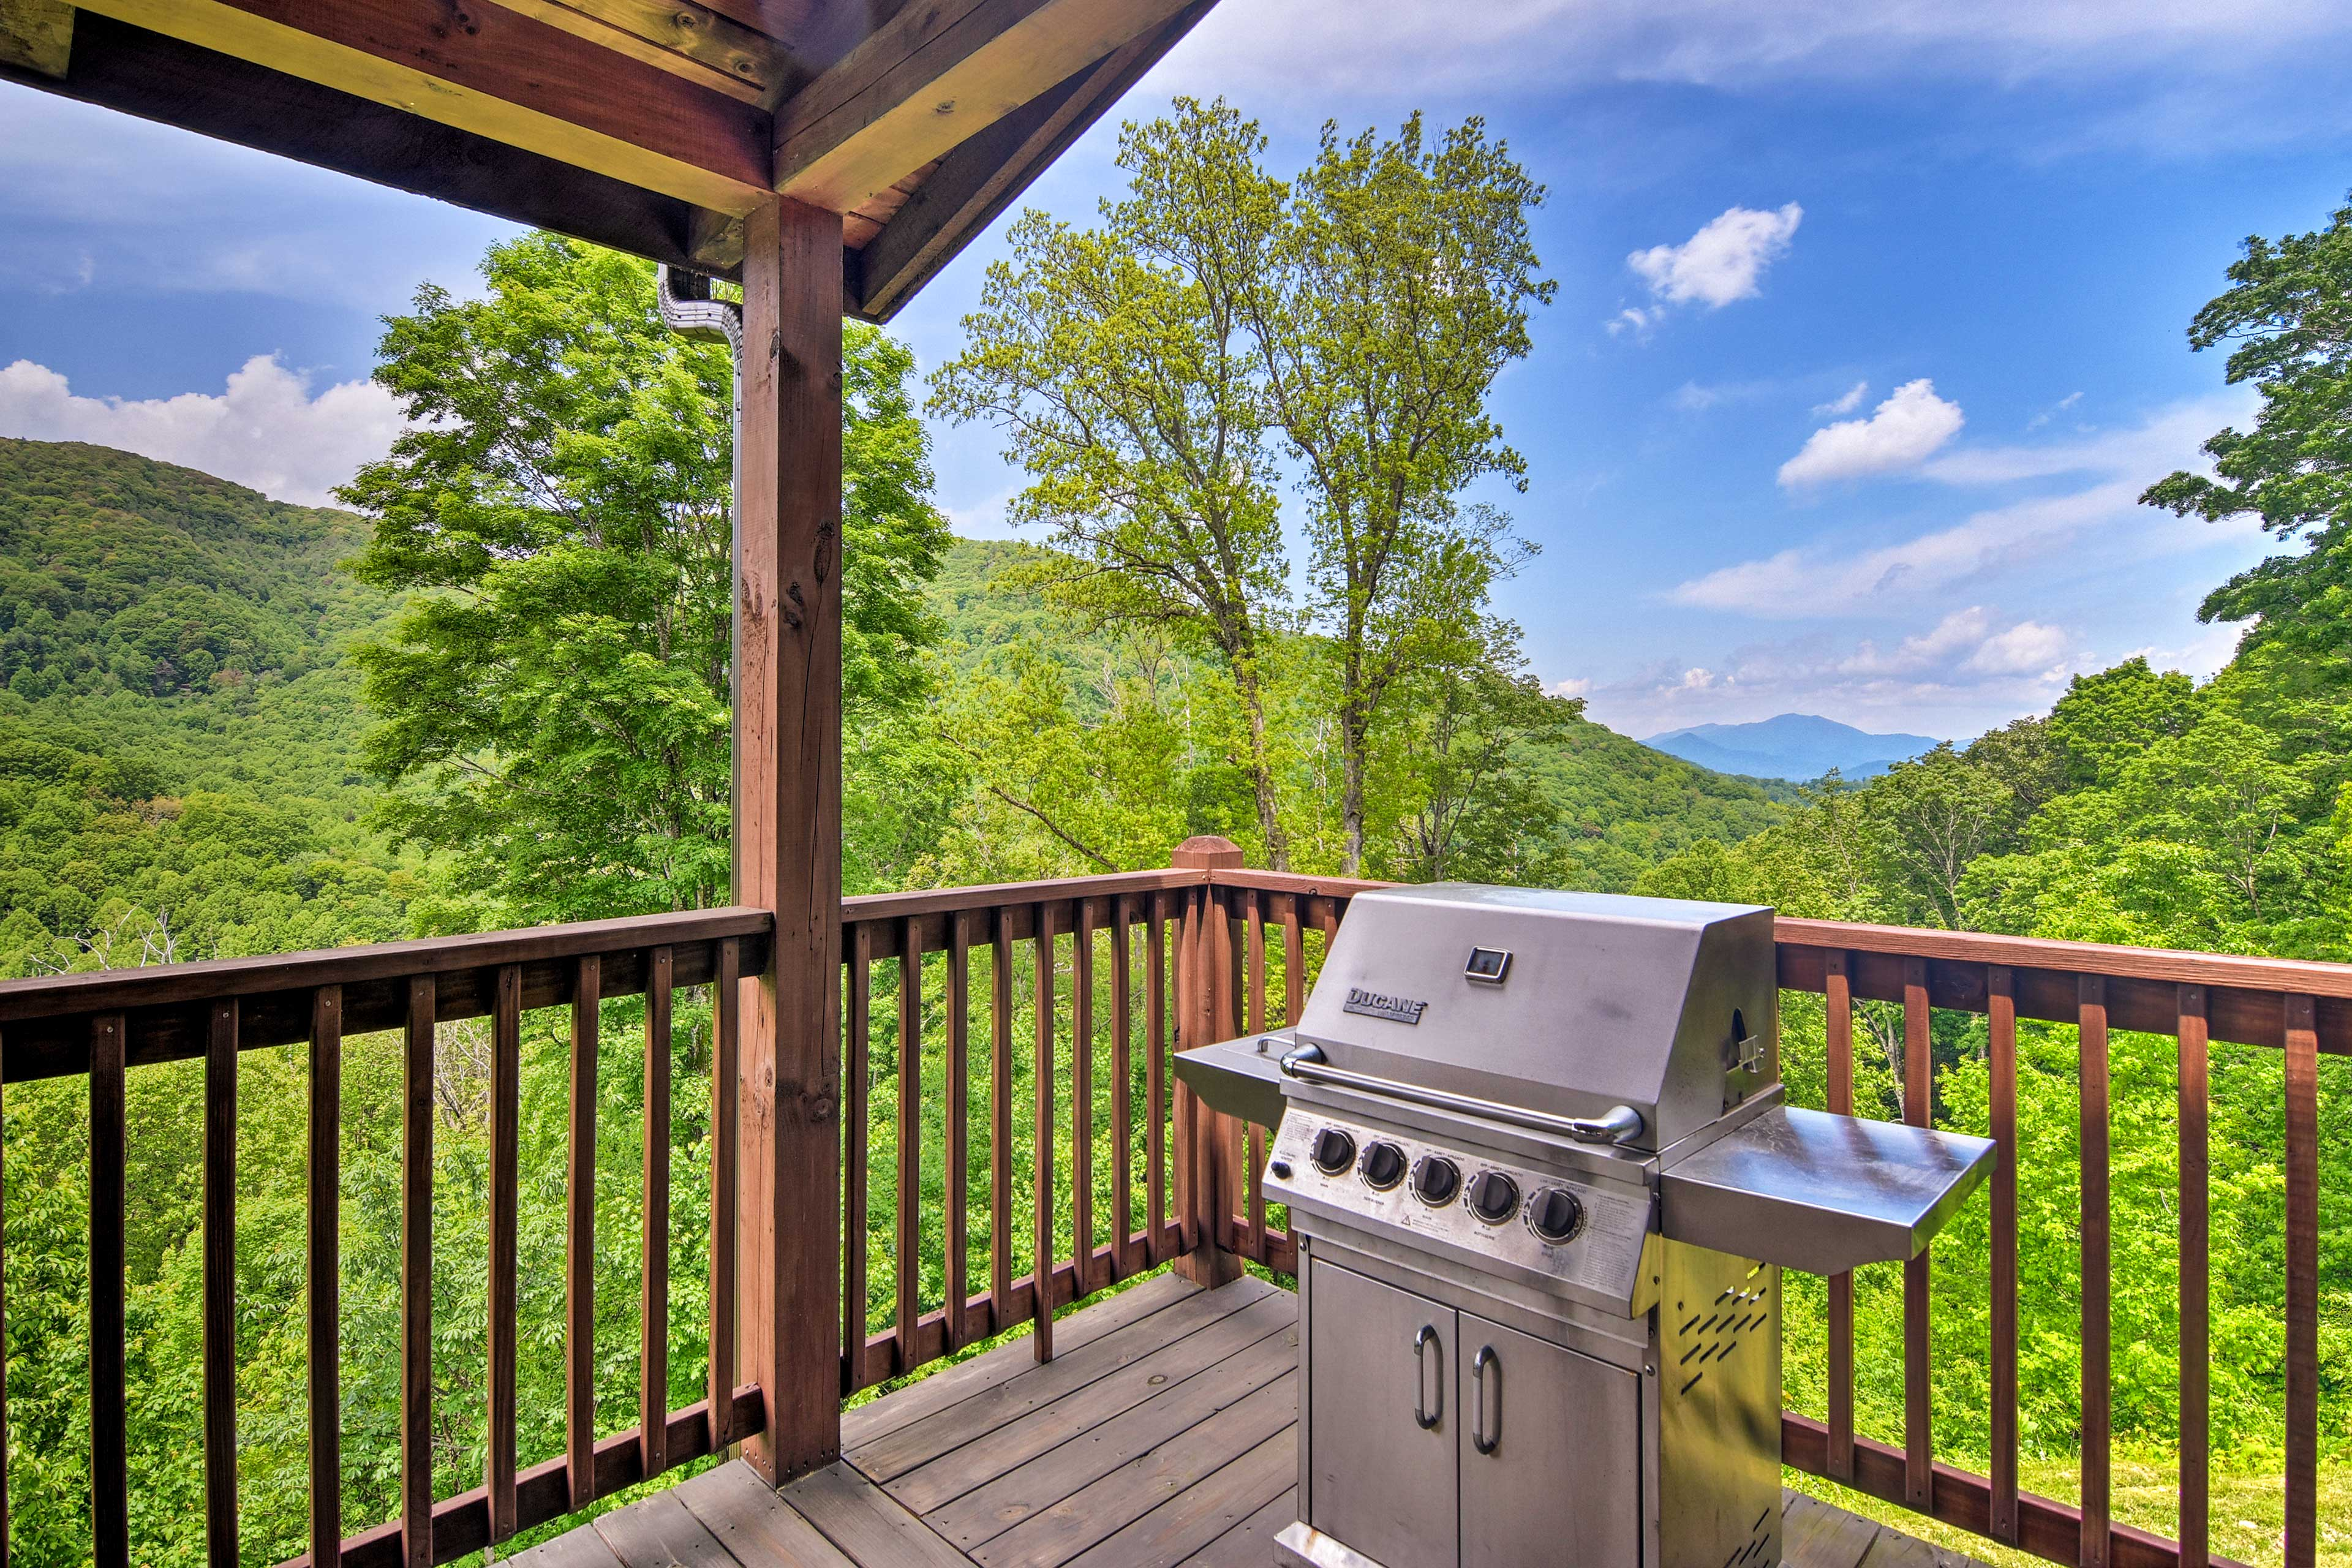 The grill master won't be able to imagine a better cookout spot!